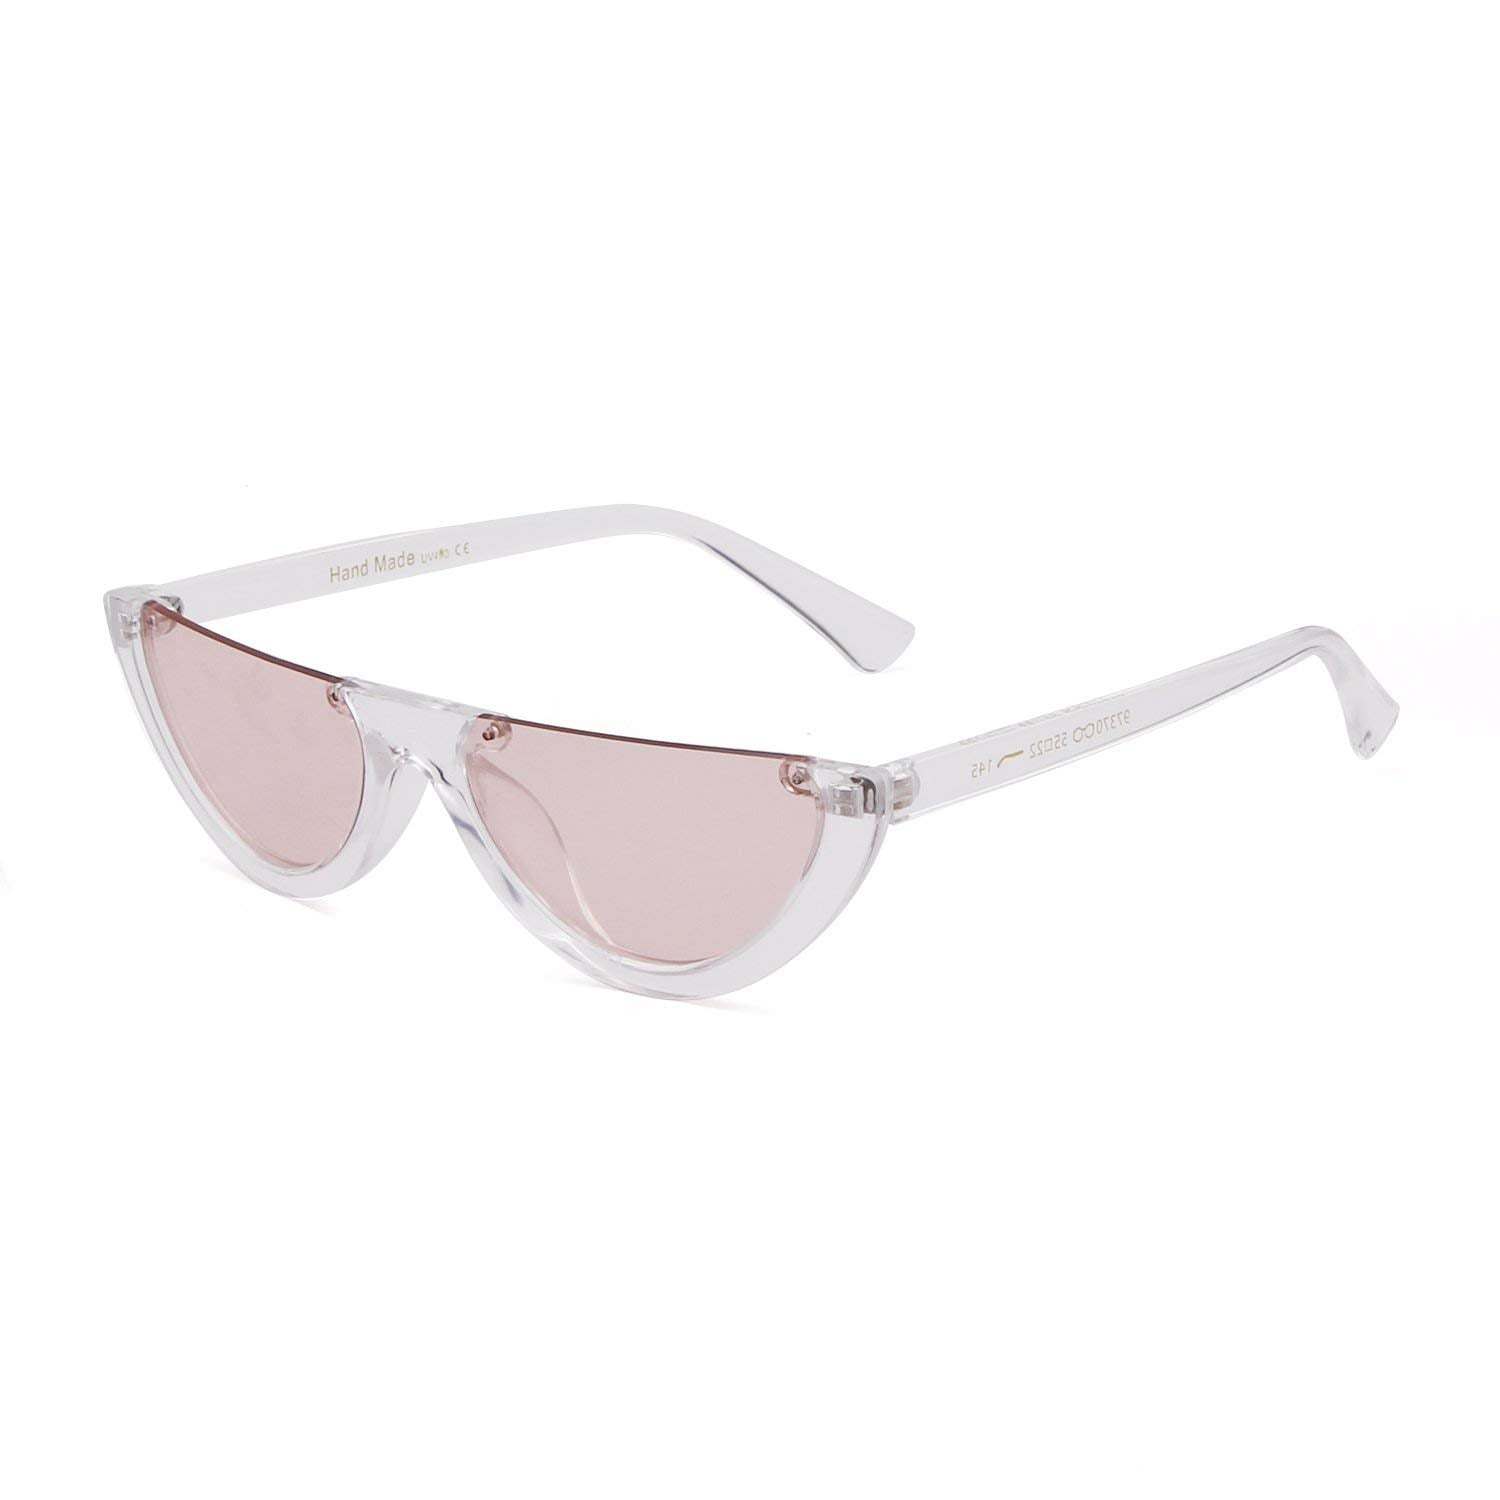 f41069a2ab53 Gifiore Clout Cat-Eye Sunglasses | Want the Tiny Sunglasses Everyone ...